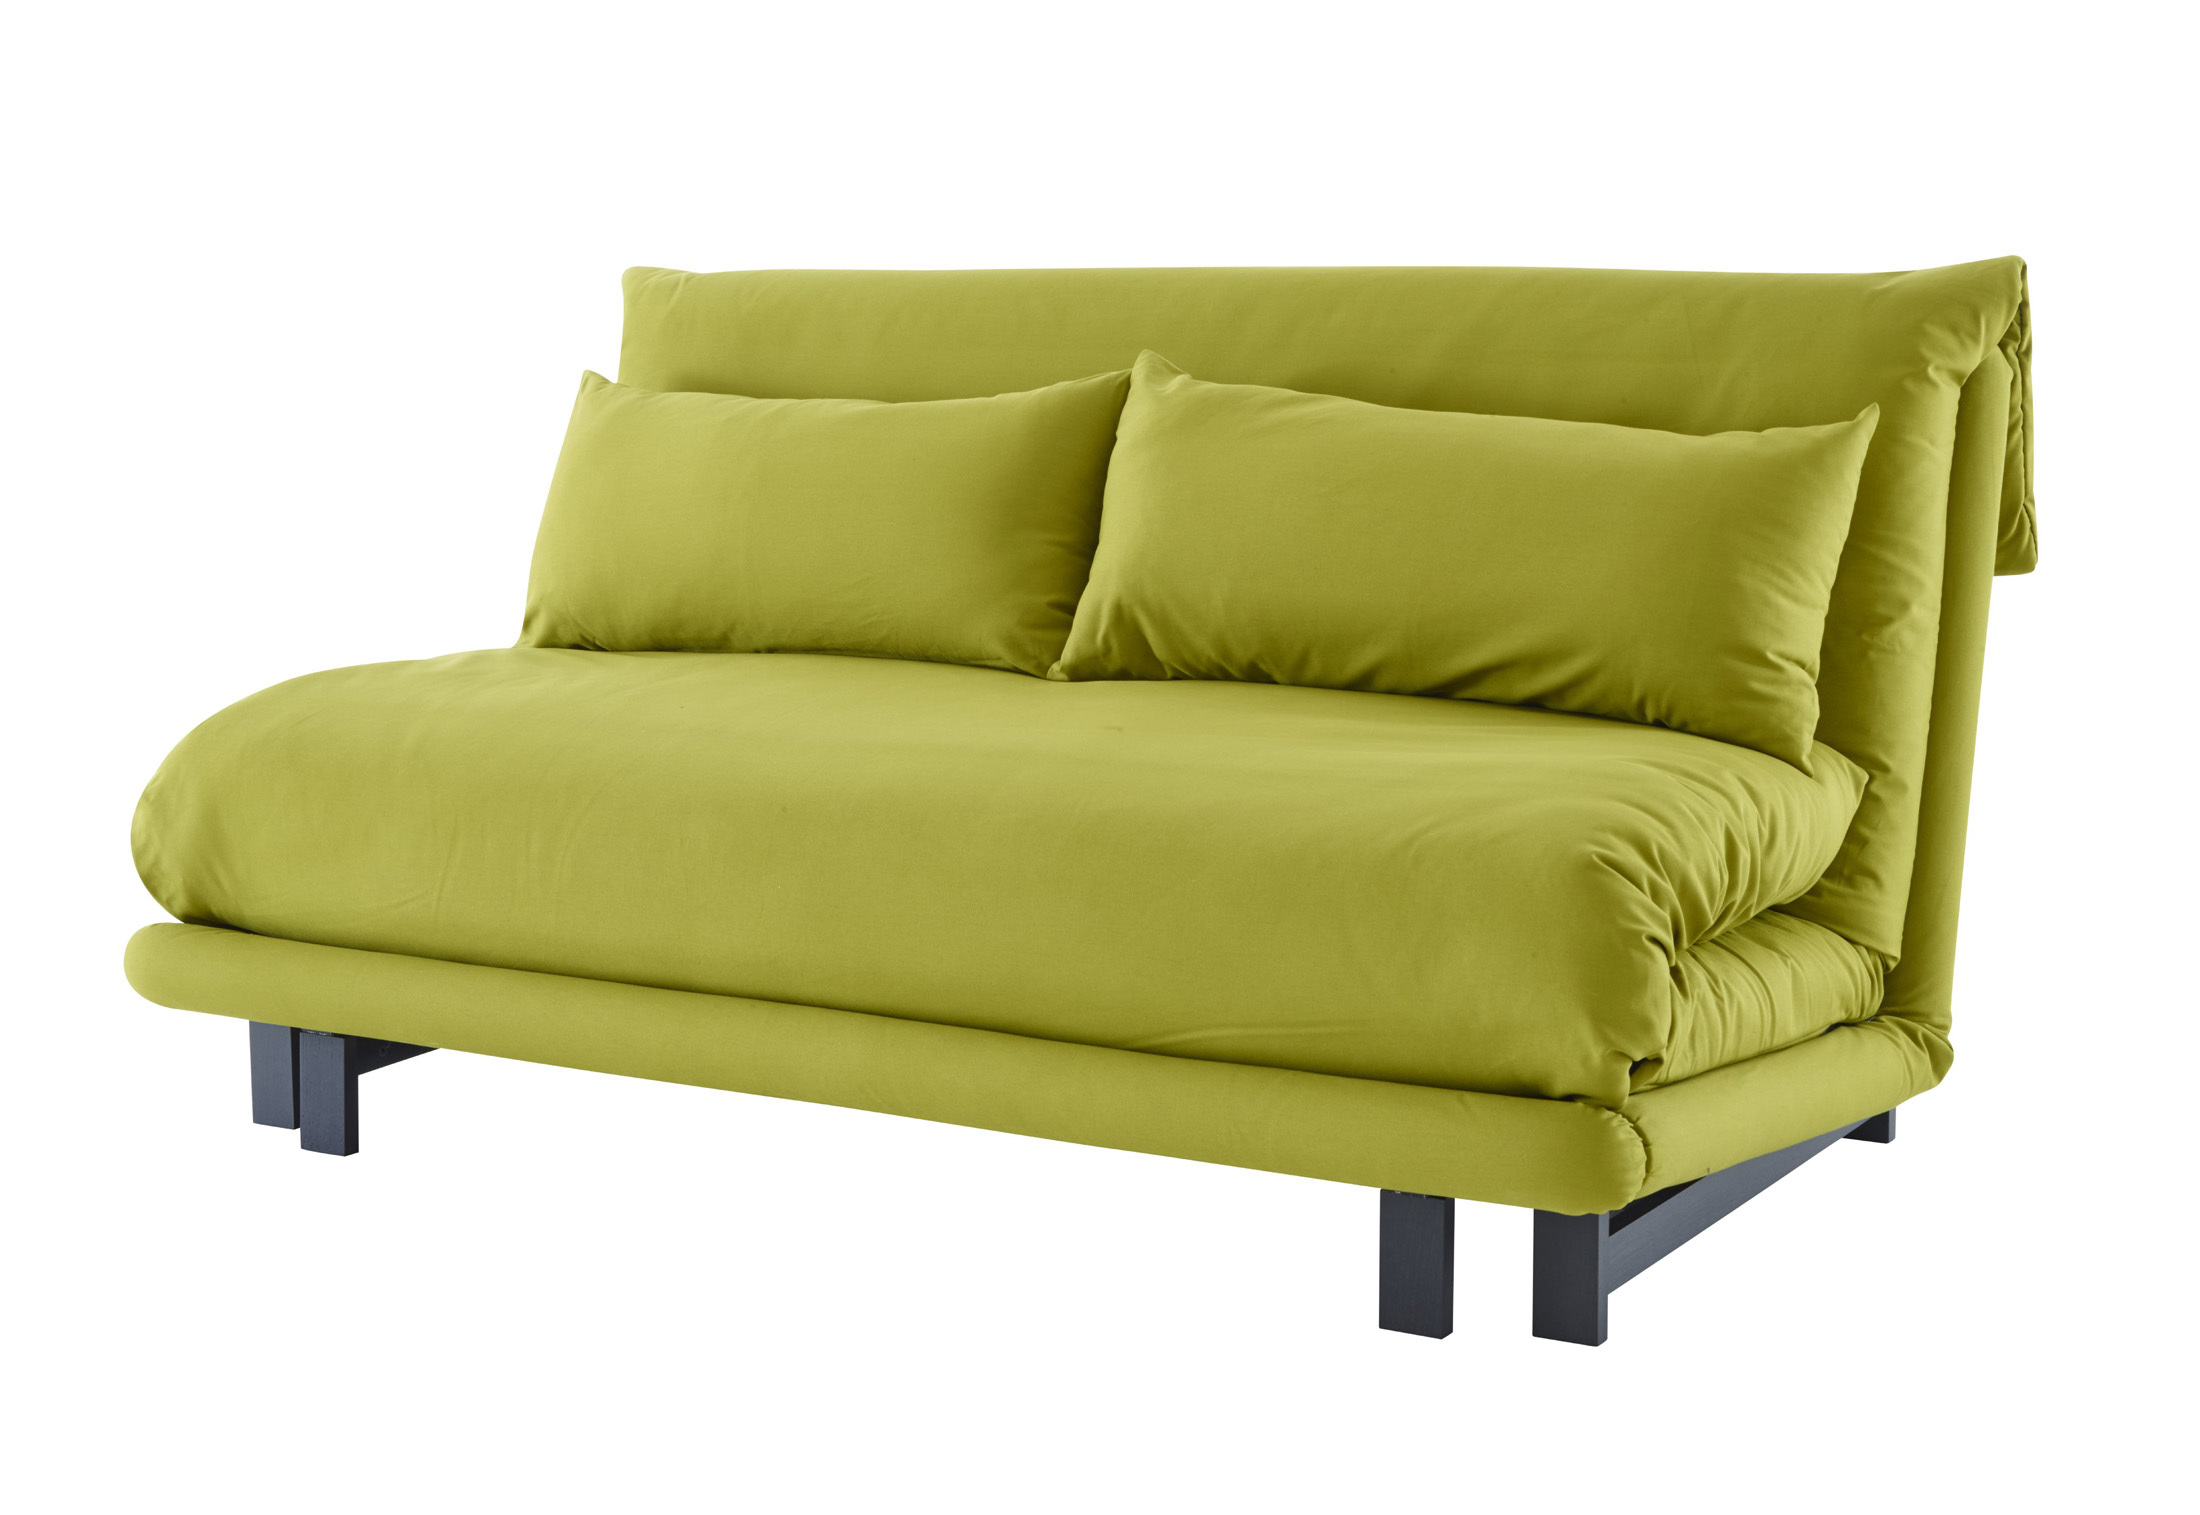 multy sofa bed ny scavenger ligne roset multy sofa bed for. Black Bedroom Furniture Sets. Home Design Ideas